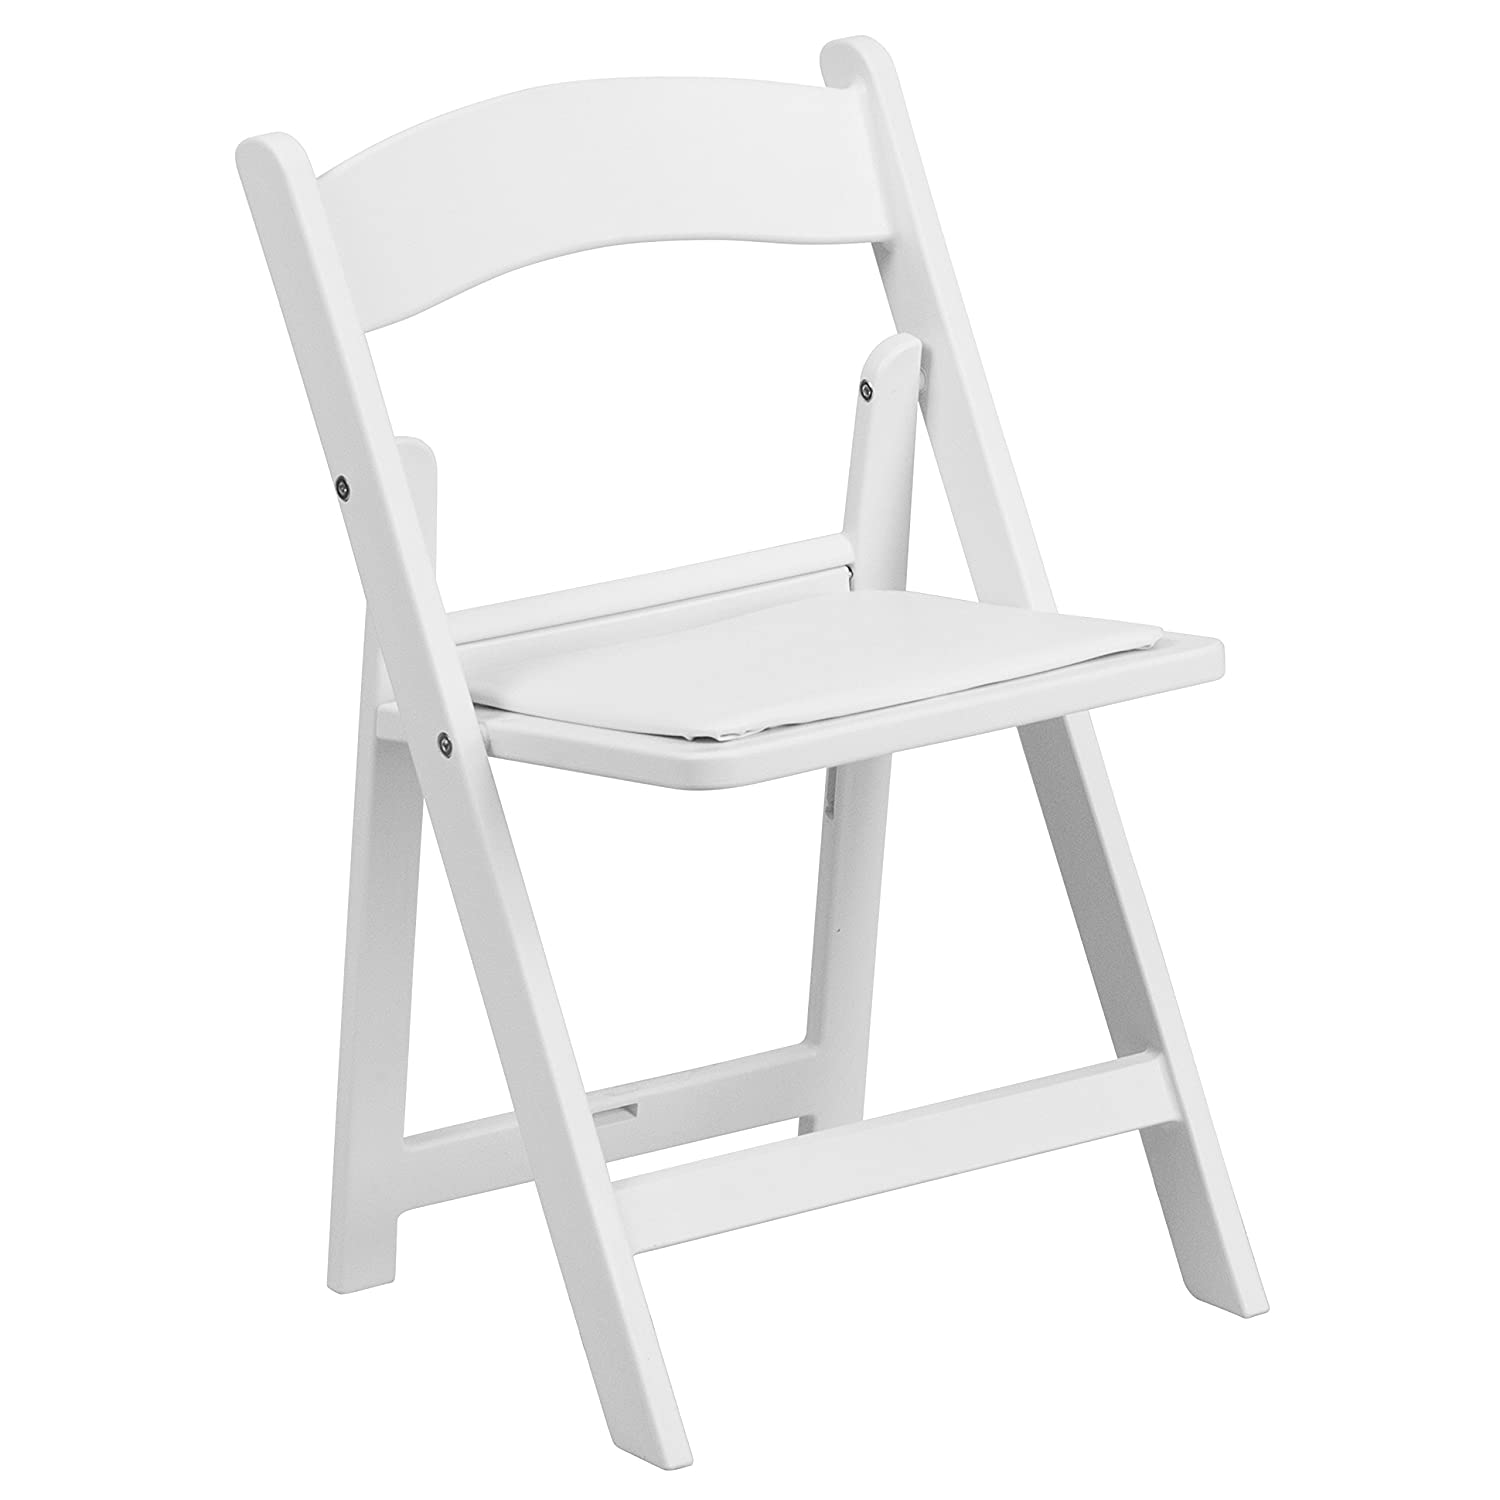 White resin folding chairs - Amazon Com Flash Furniture Kids White Resin Folding Chair With White Vinyl Padded Seat Kitchen Dining